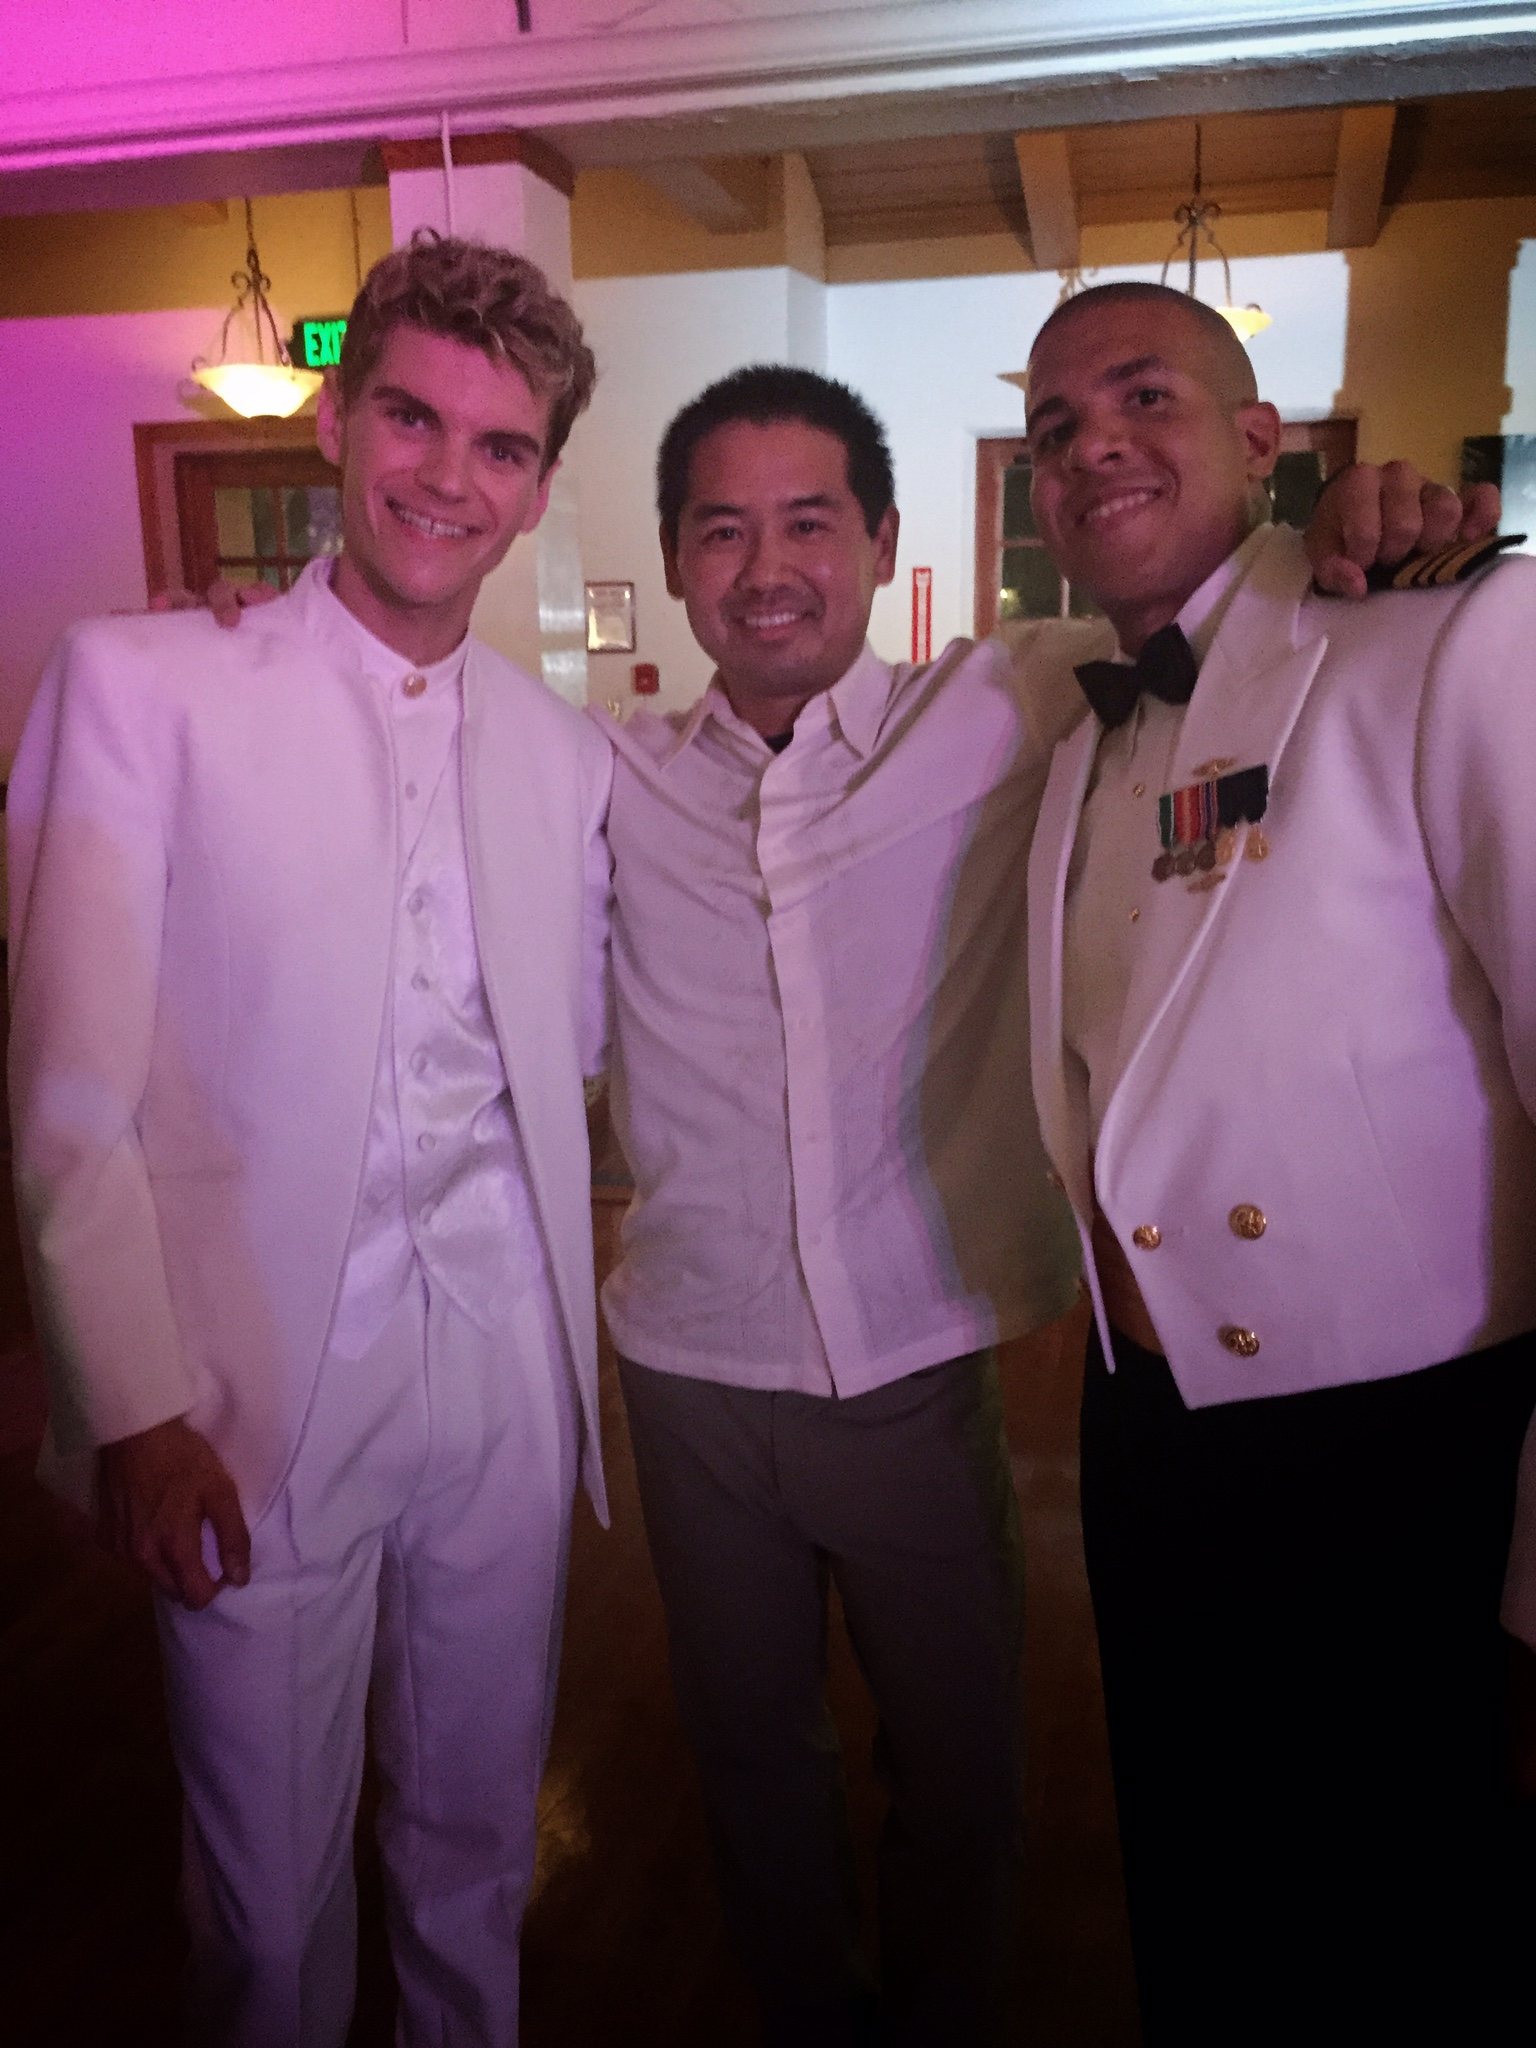 Successful end to a Tuesday night wedding at MCRD in San Diego with these two grooms. Congratulations Joshua and Jonathan.